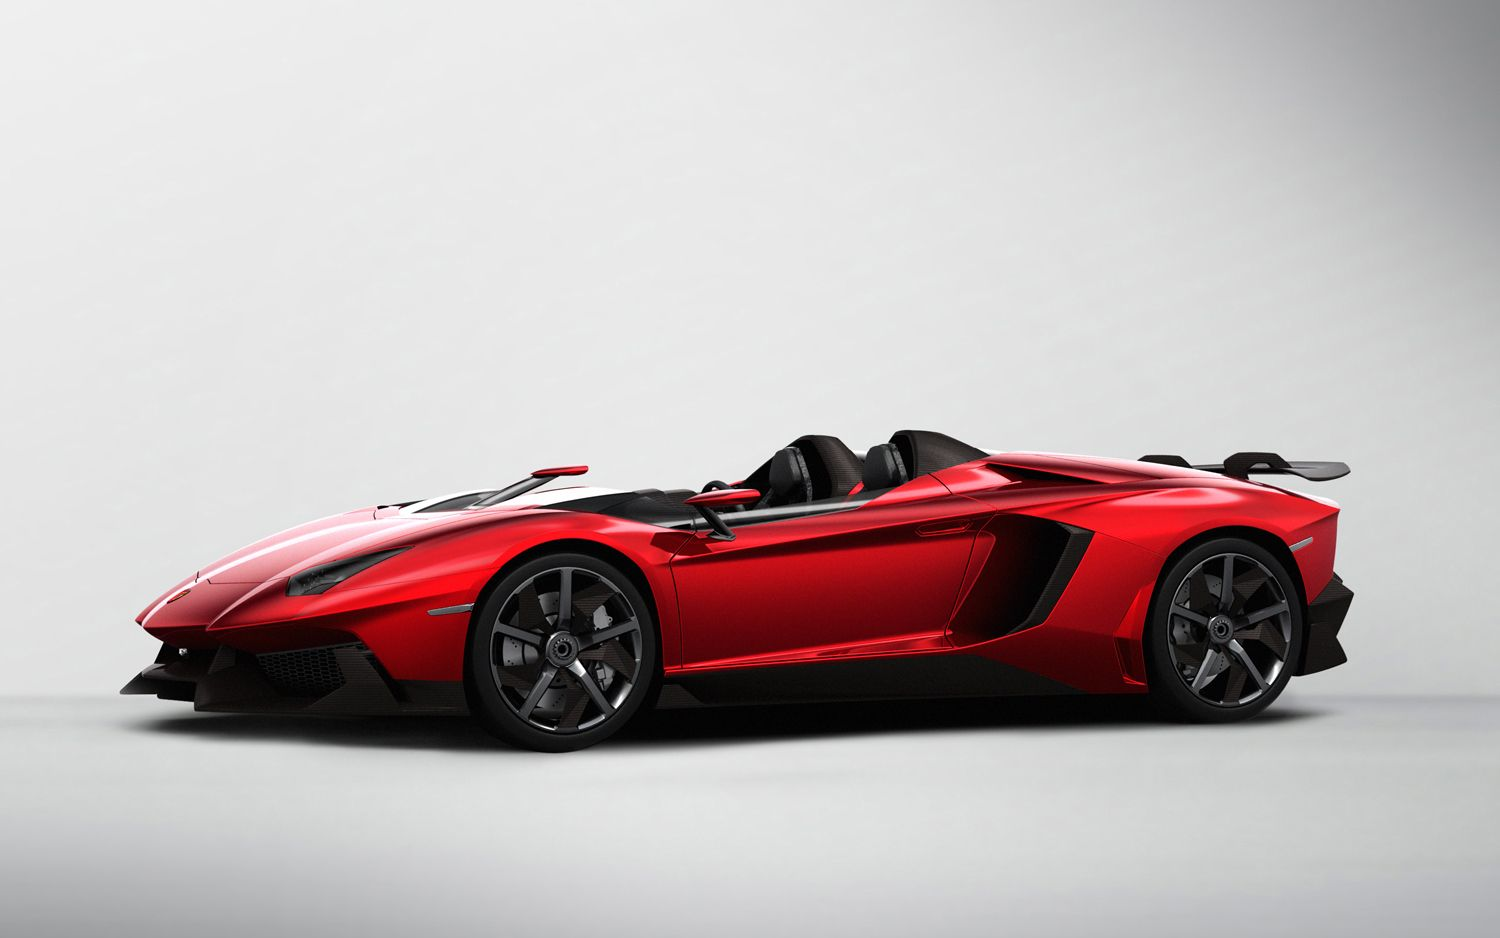 We Hear: Lamborghini Aventador Special Editions, New Models On The Way